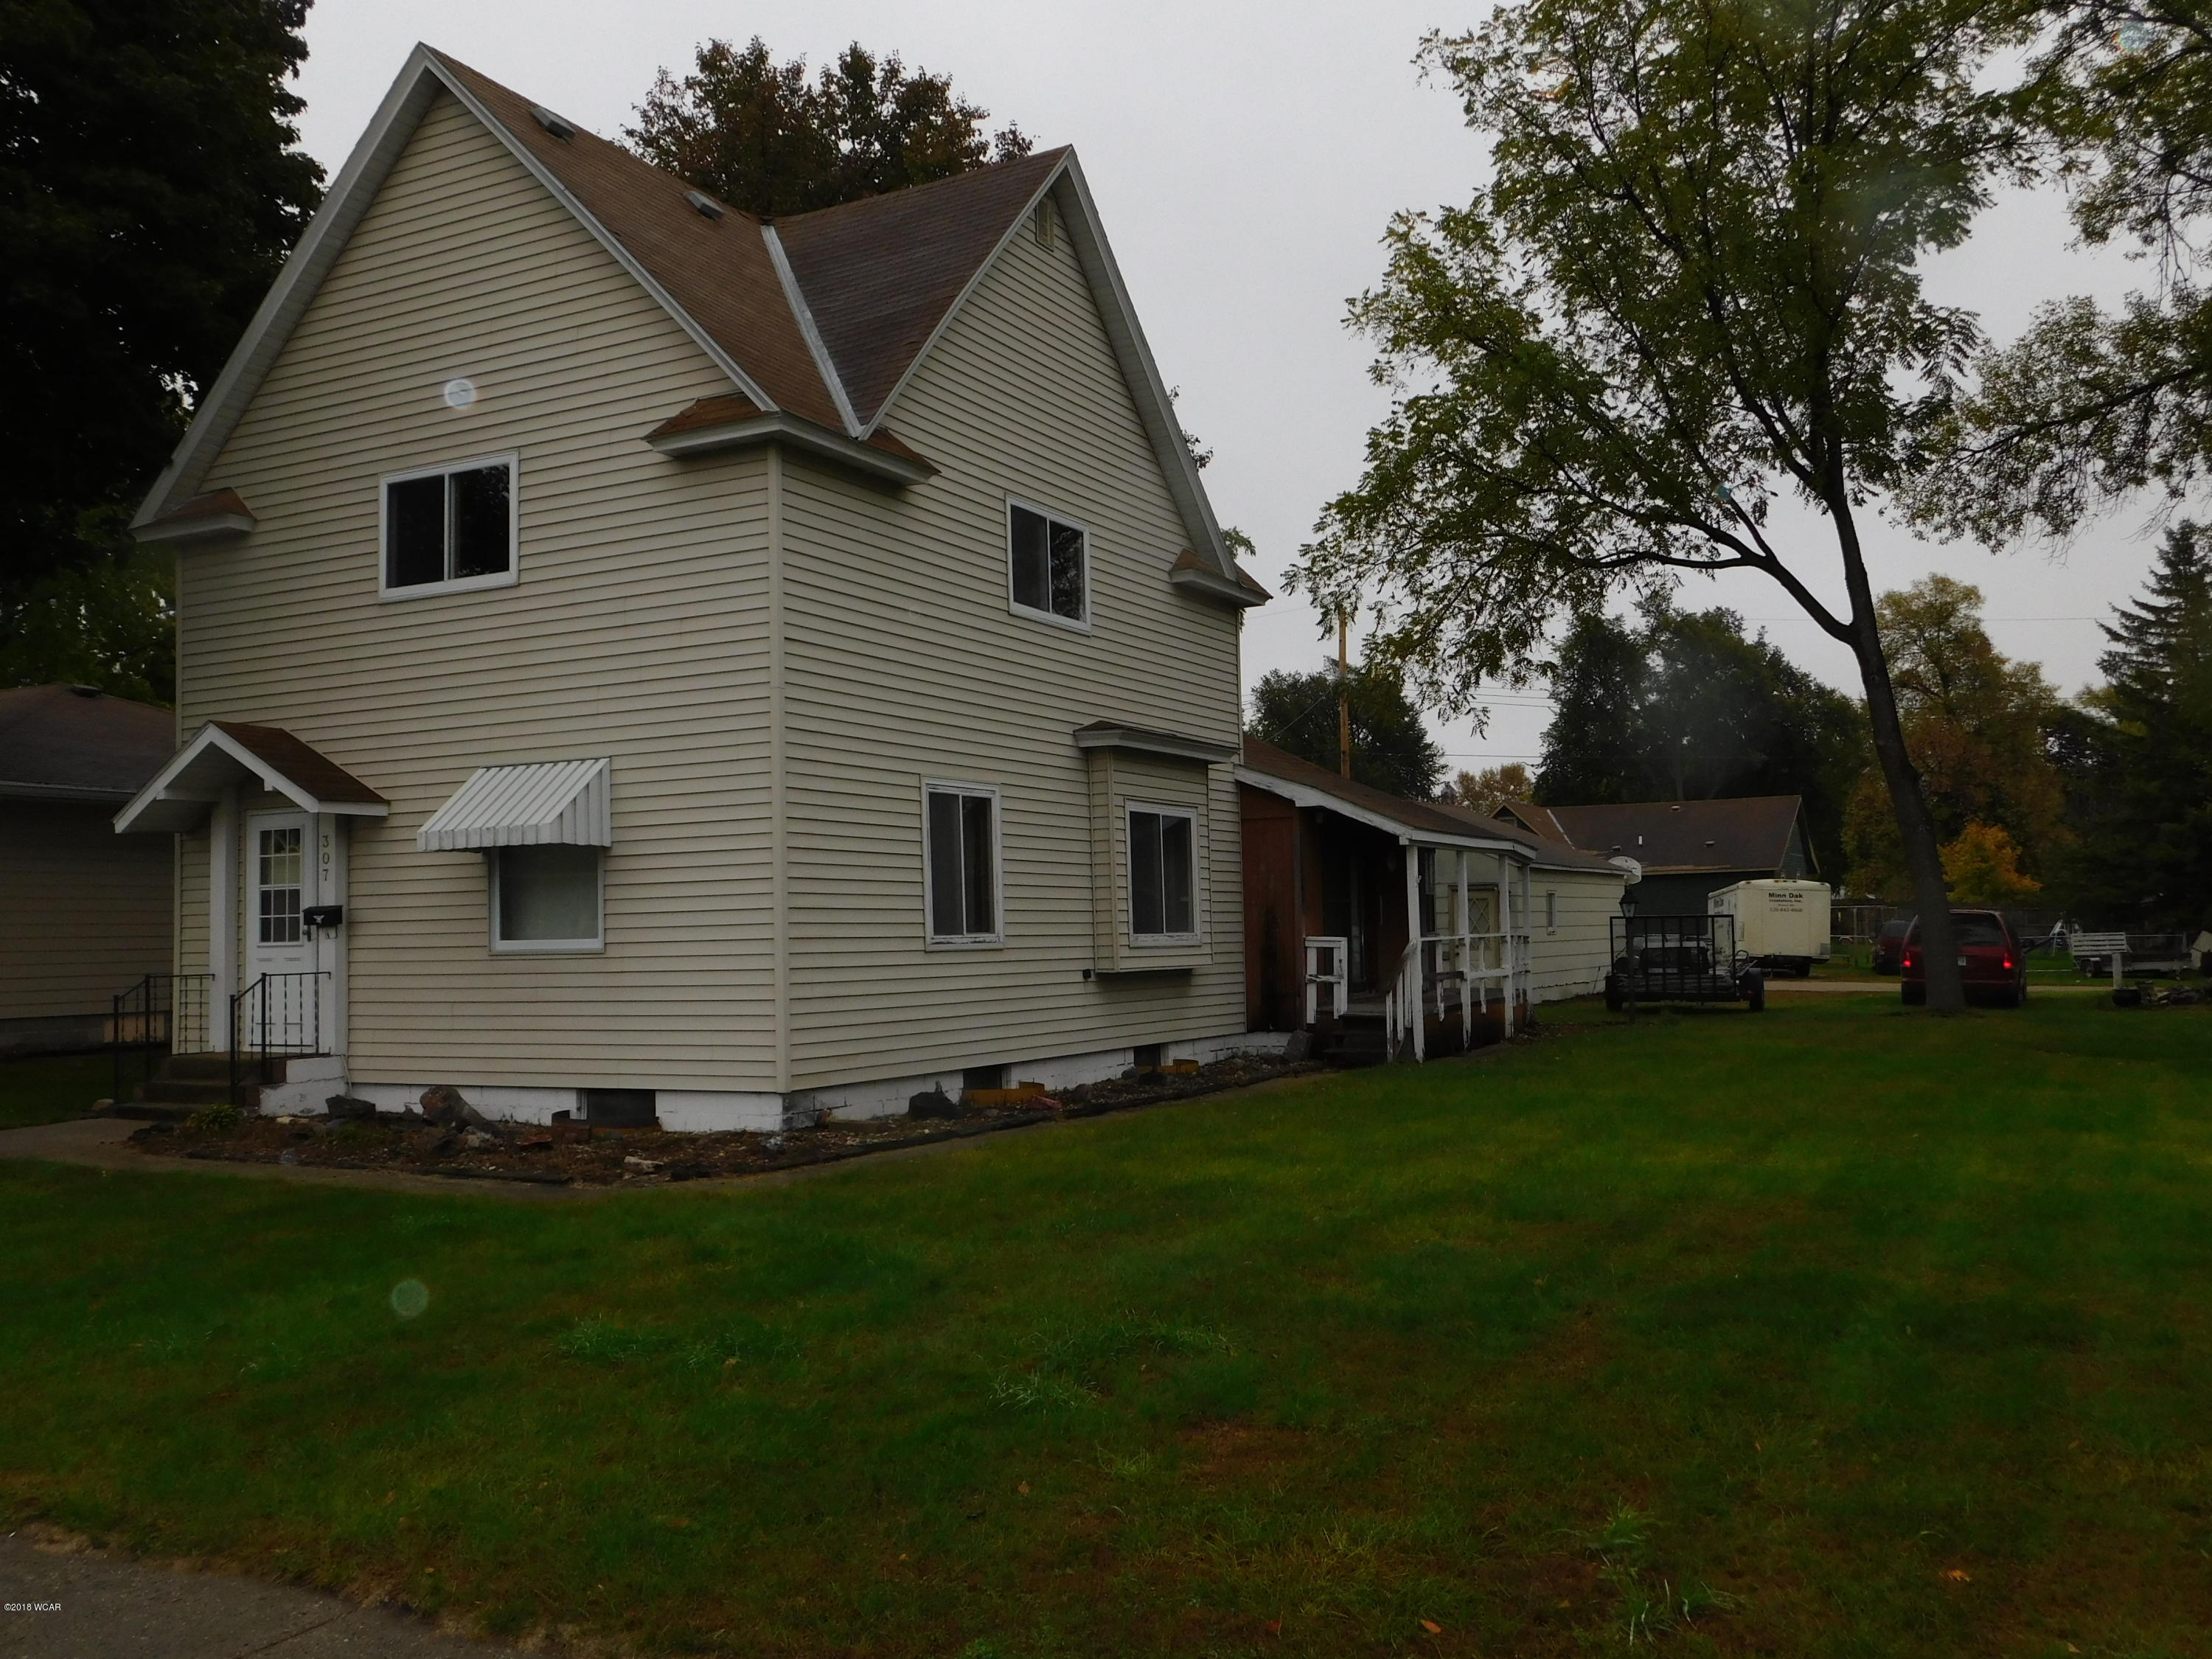 307 11th Street,Benson,4 Bedrooms Bedrooms,2 BathroomsBathrooms,Single Family,11th Street,6032543